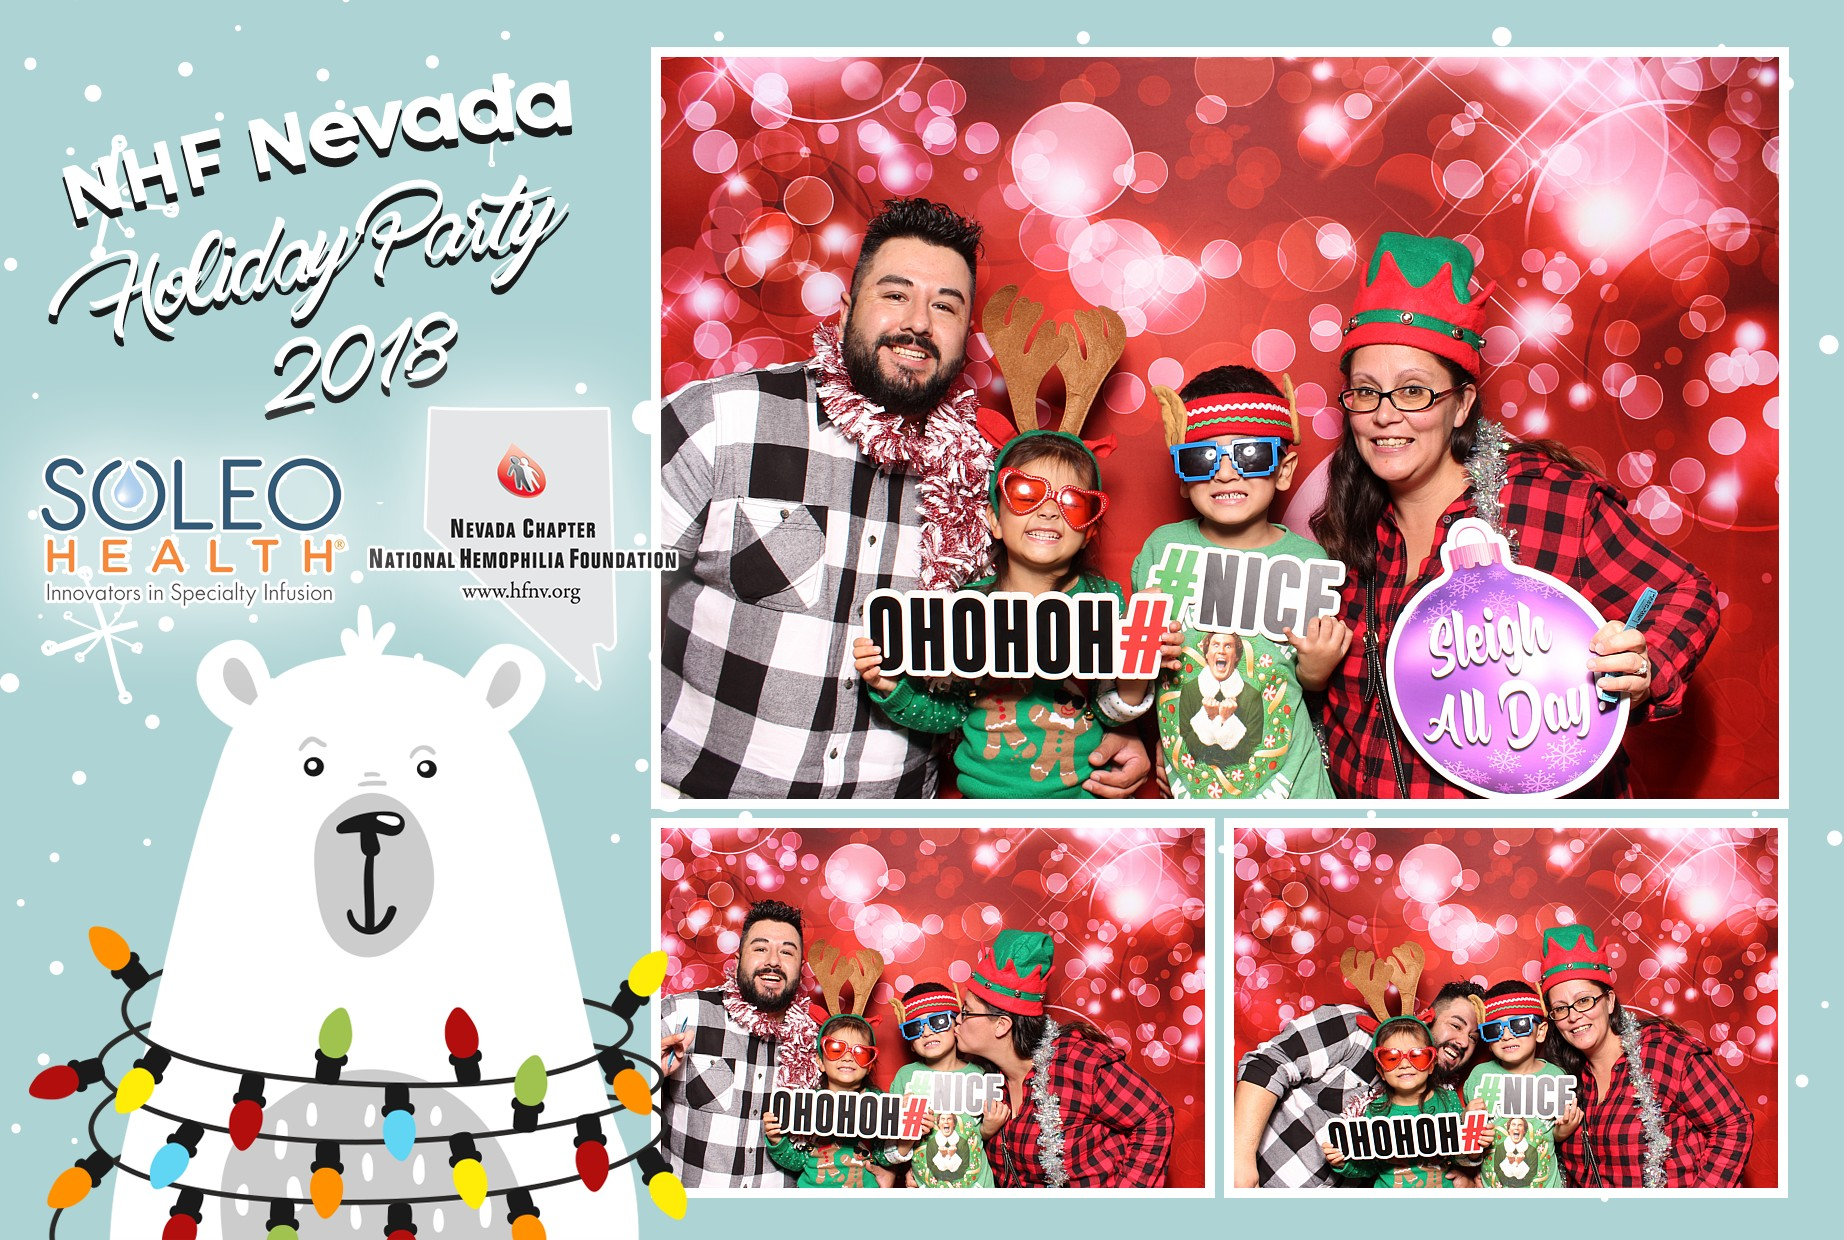 Company Holiday Party Photo Booth Rental